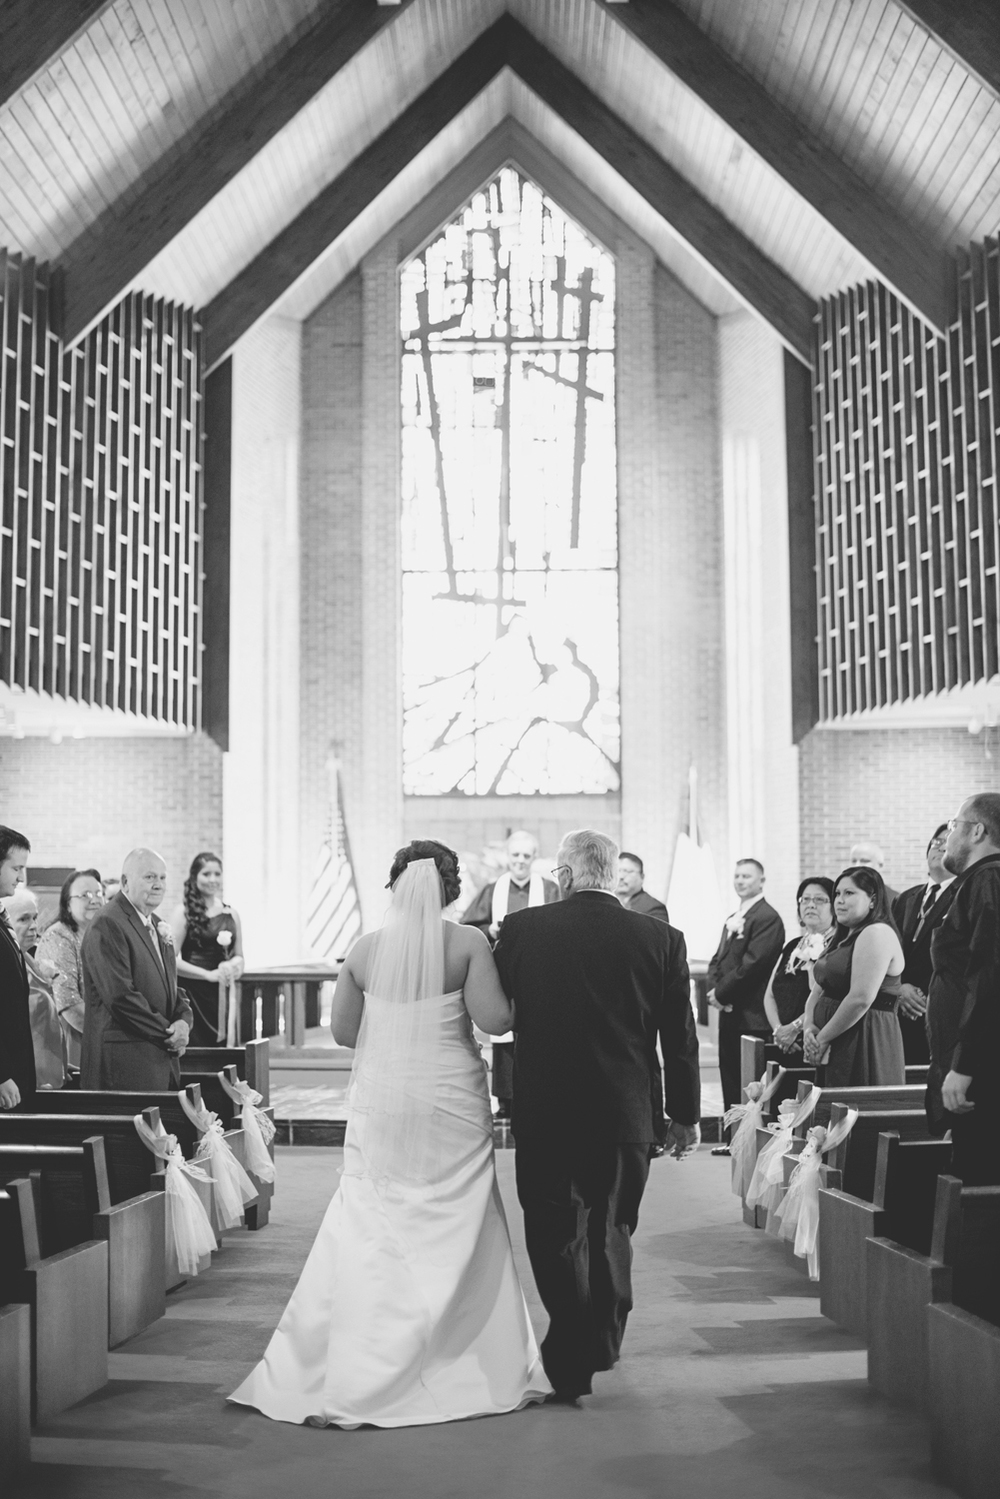 Tabernacle UMC Wedding in Poquoson, Virginia |  Wedding ceremony